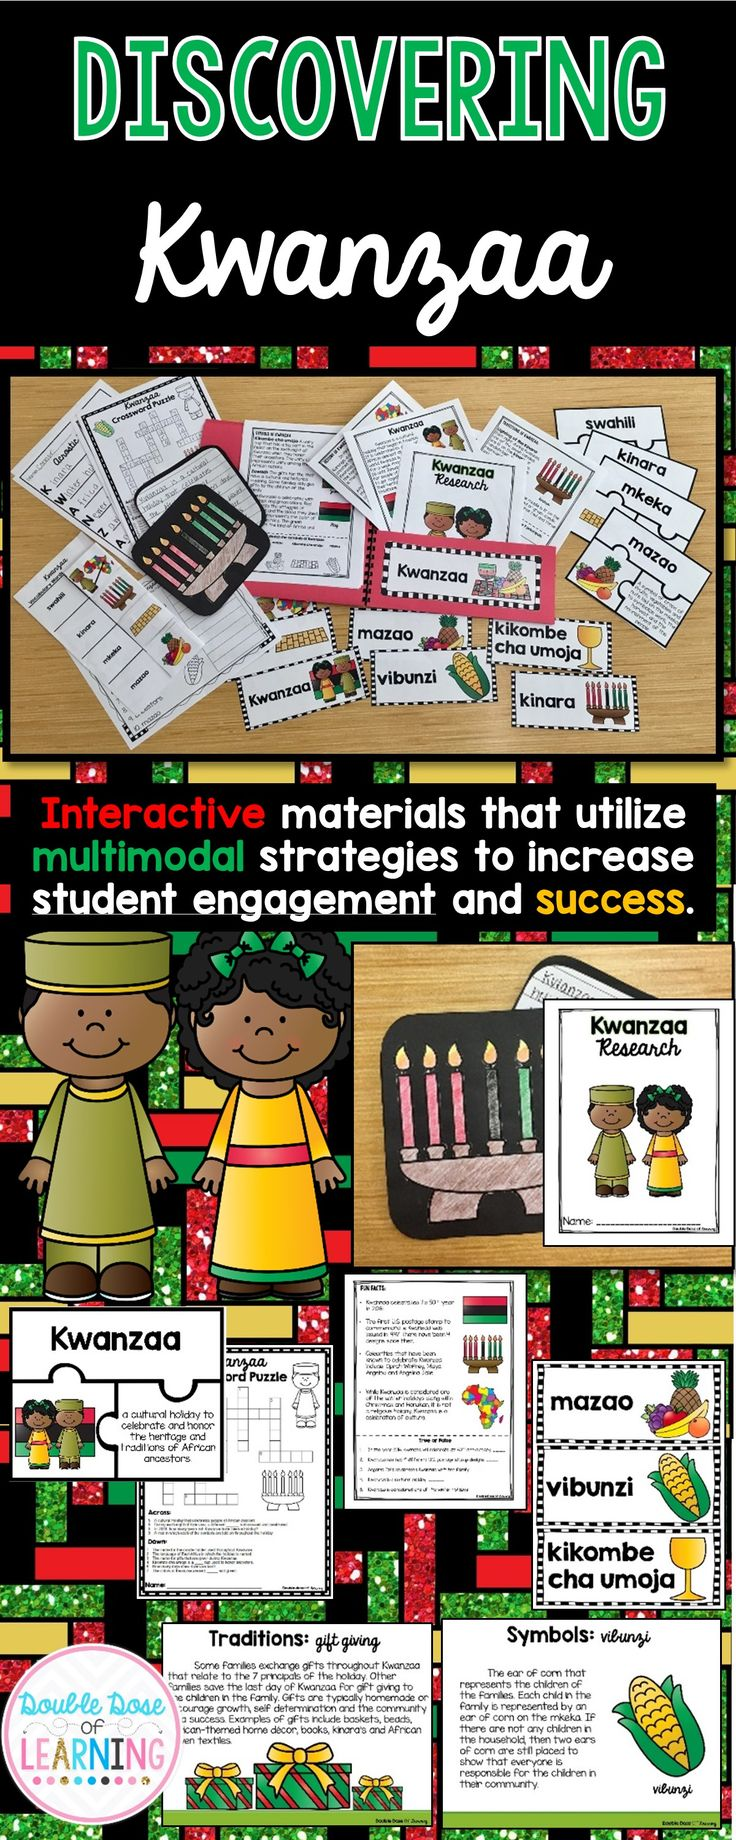 This holiday season, use informational texts and research of the history and traditions of Kwanzaa for grades 1-3 by teaching a unit that integrates ELA and social studies at the same time! The materials in this unit are interactive and utilize multimodal strategies to increase student engagement and outcomes. The research unit is a comprehensive week long unit that integrates technology, vocabulary, writing, art, reading strategies and more!